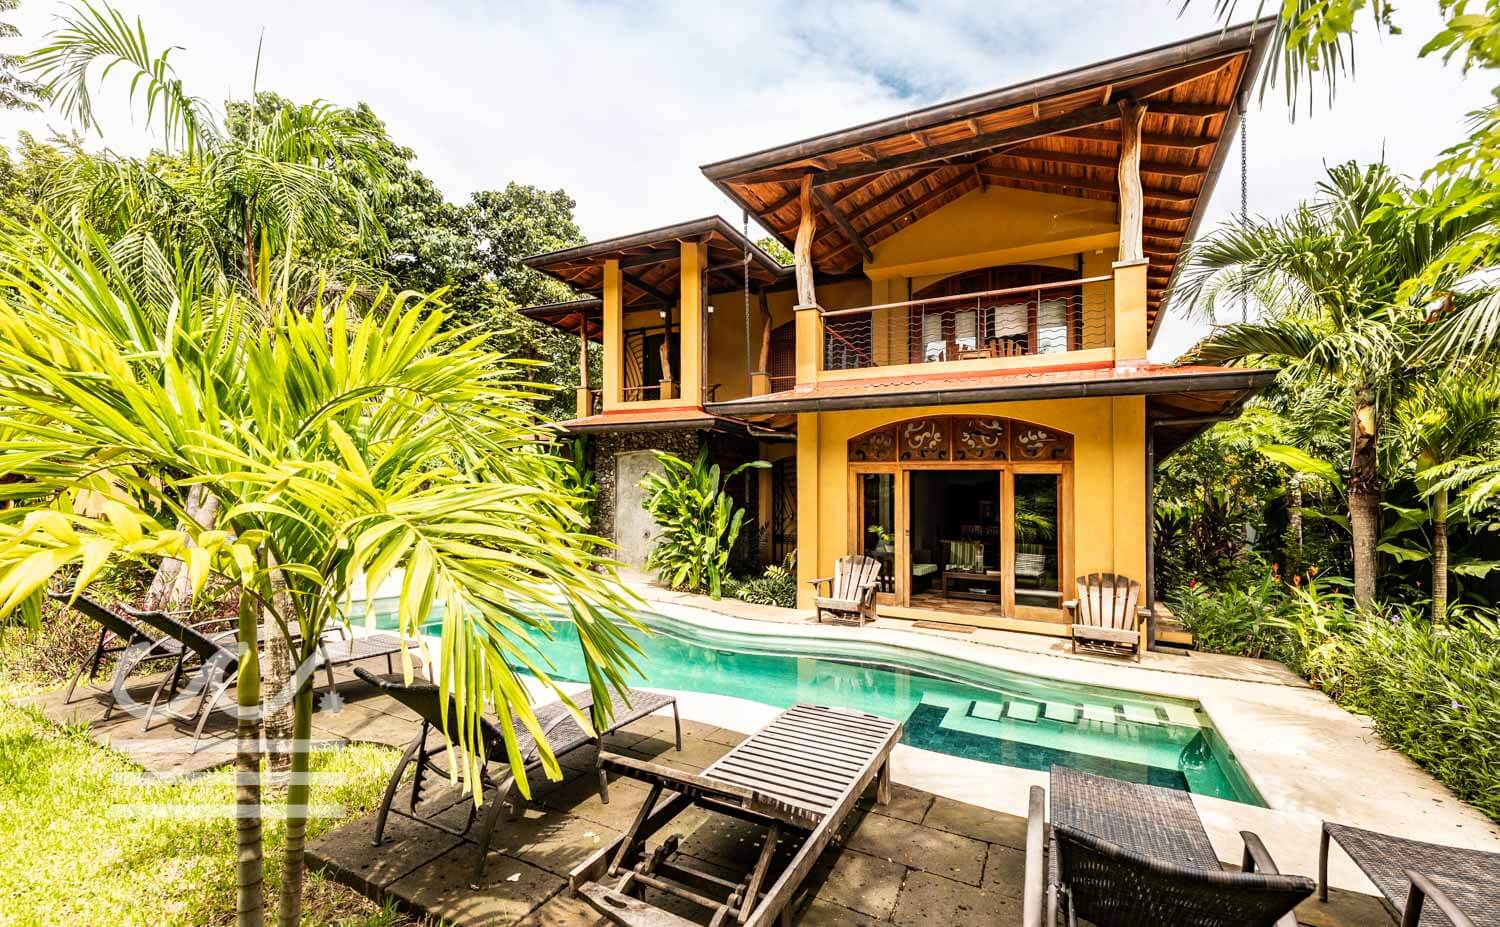 Endless-Summer-Wanderlust-Realty-Real-Estate-Rentals-Nosara-Costa-Rica-7.jpg